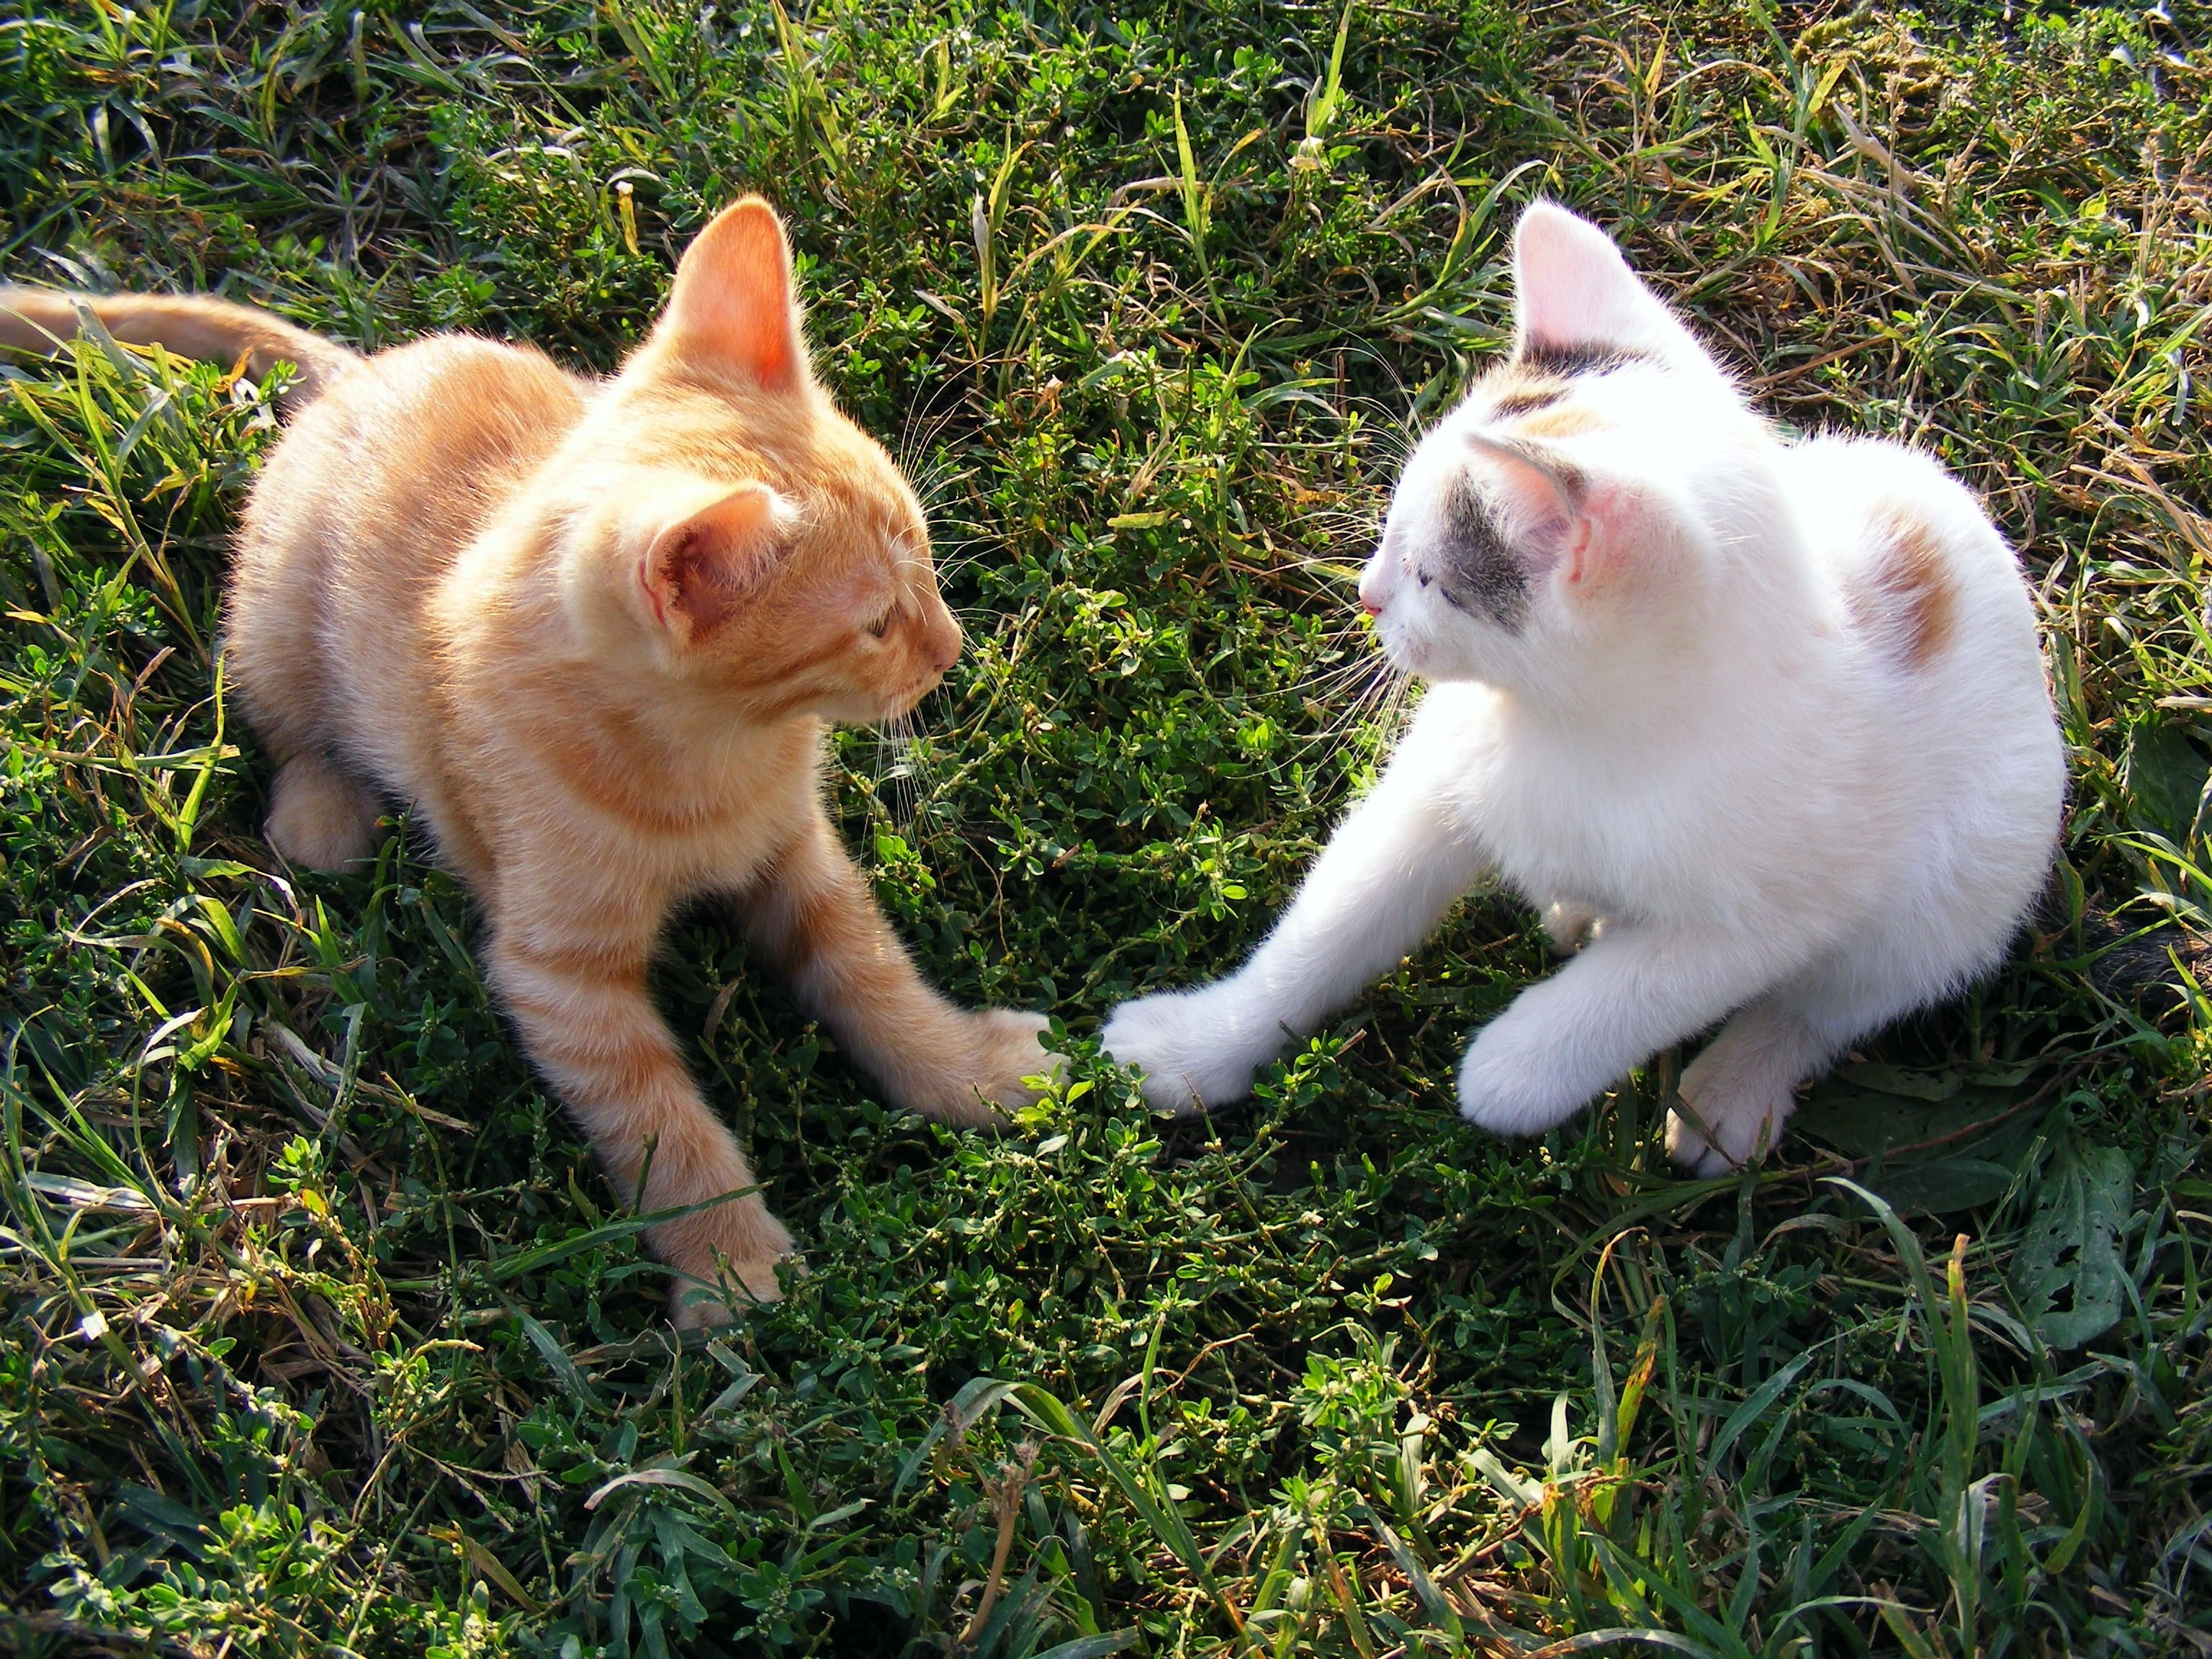 Cute Puppies With Cute Kittens Cute Unicorn Kittens Cute Van Kittens Cute Zombie Kittens Good Names For Cute Kitt With Images Cat Care Kittens Funny Super Cute Kittens